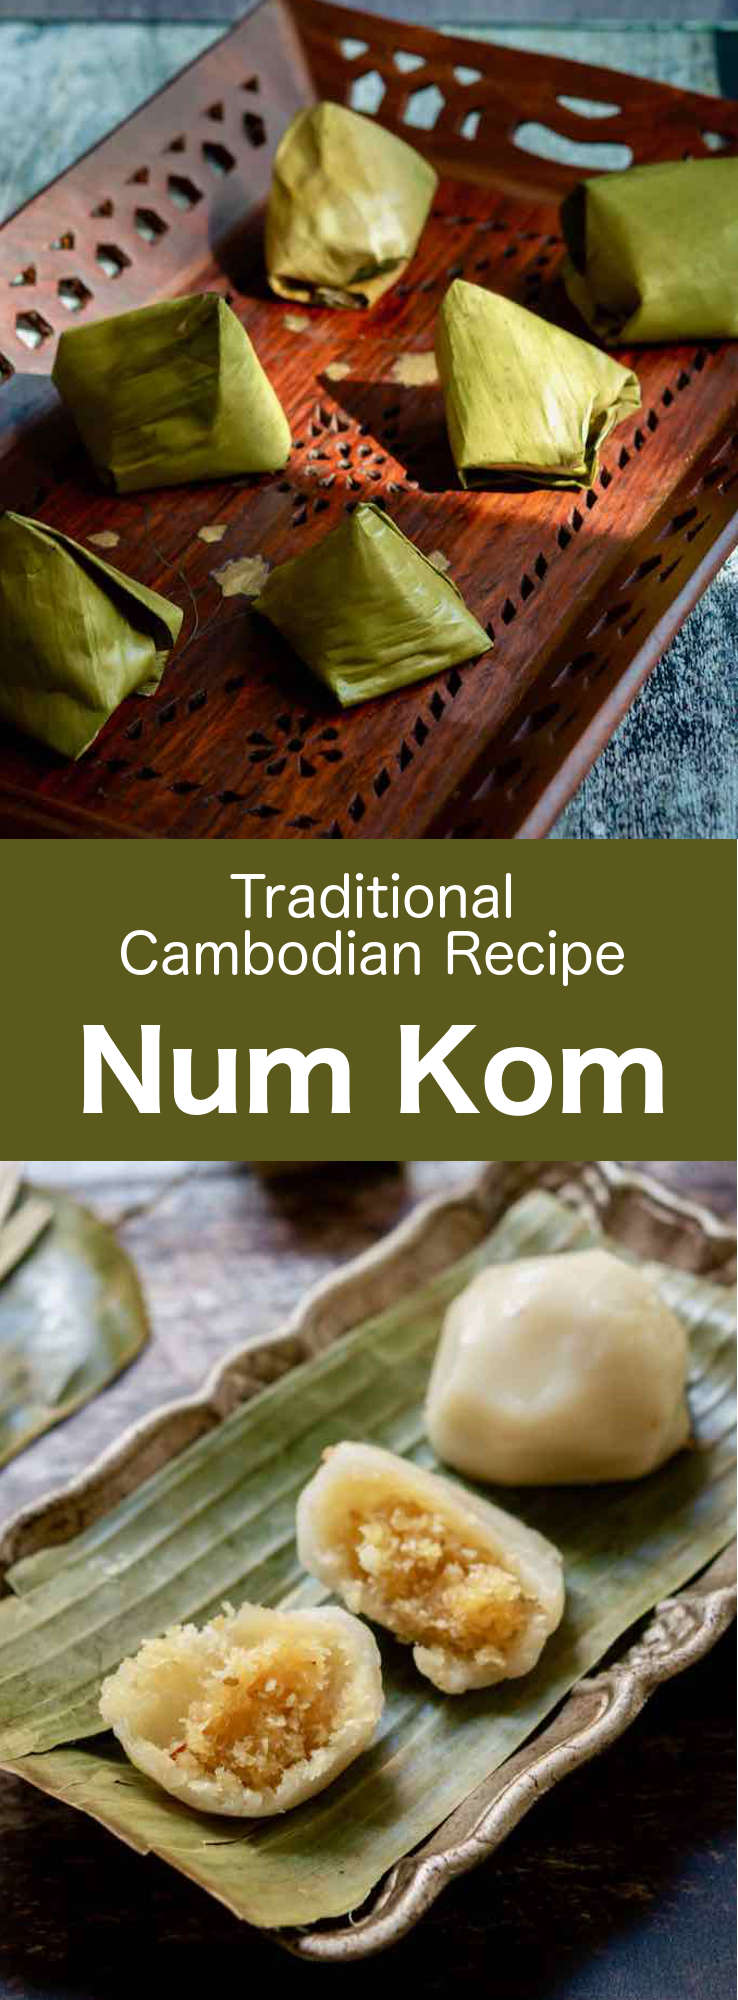 Num kom is a traditional Cambodian rice cake that is made of glutinous rice flour outer dough filled with palm sugar, freshly grated coconut and roasted sesame seeds. #Cambodian #CambodianRecipe #CambodianCuisine #AsianCuisine #AsianRecipe #WorldCuisine #196flavors